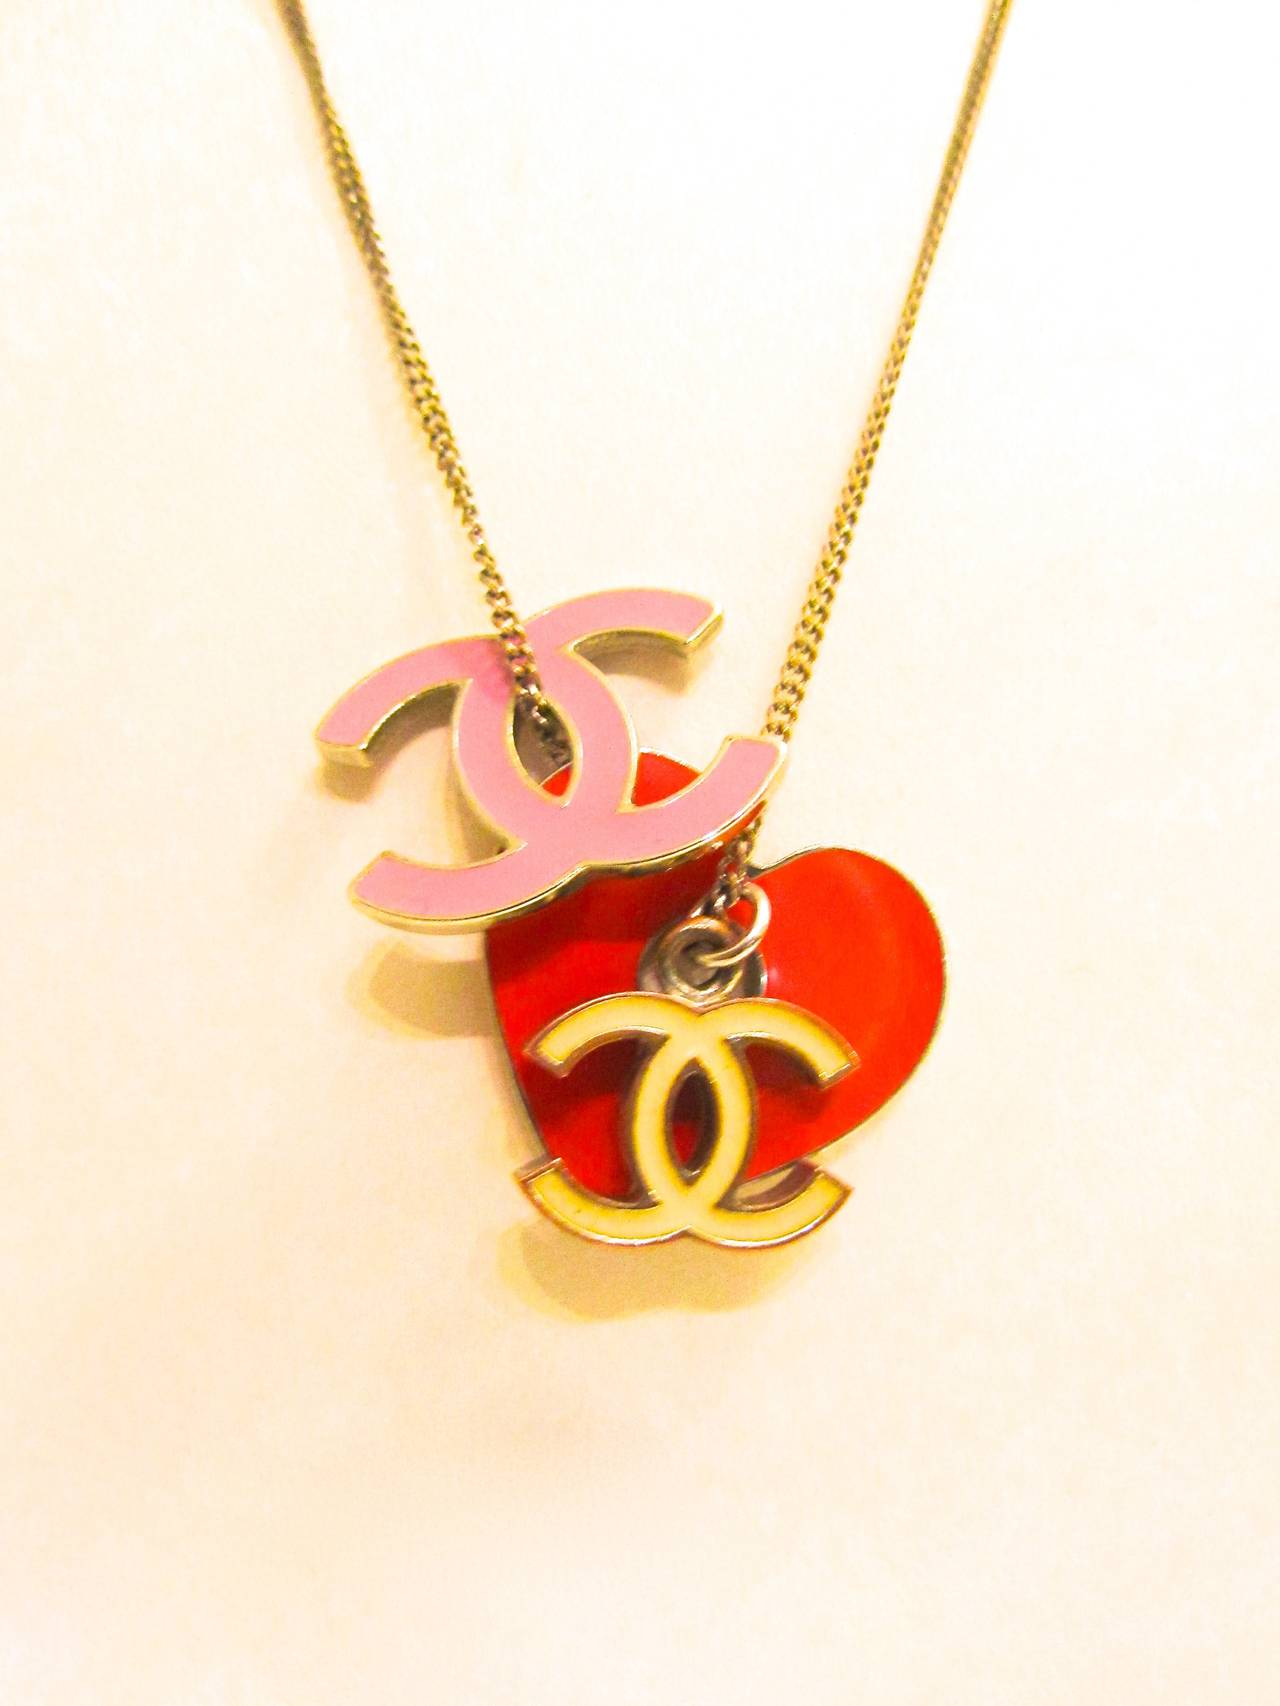 Vintage CHANEL Silver Toned Necklace - Red Heart, Pink &Yellow CC Logos - 1980's 2